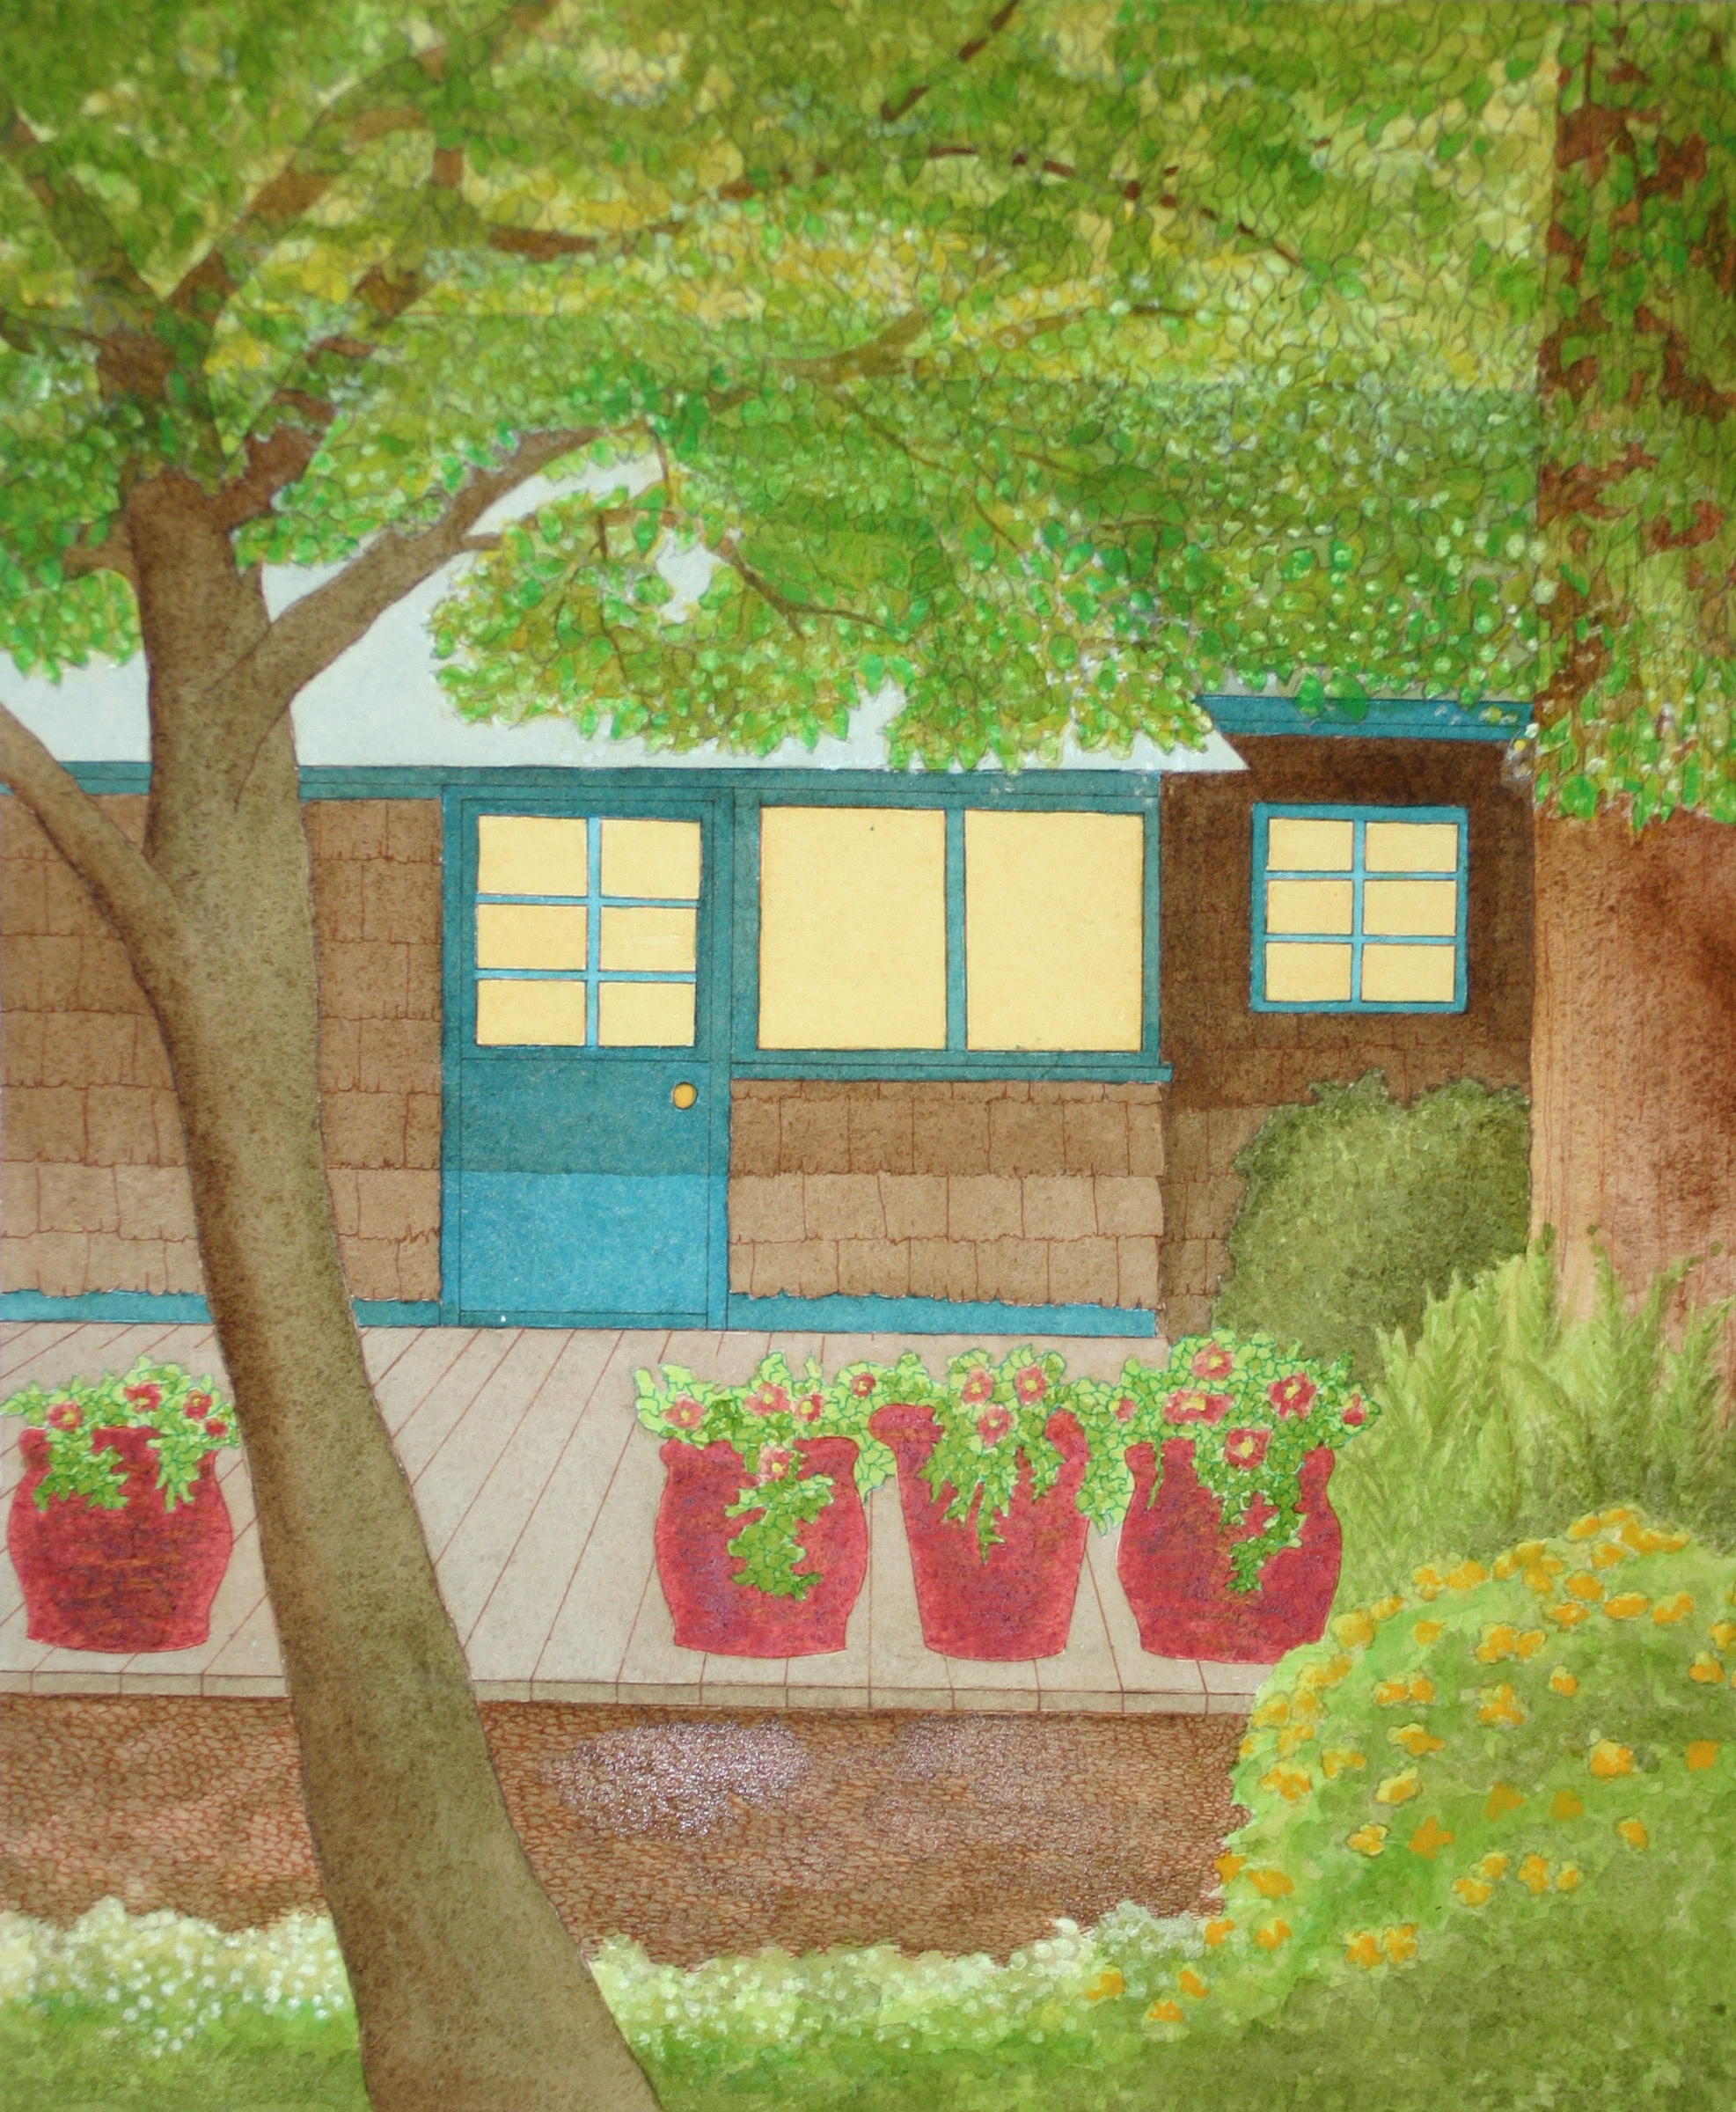 PAINTING BY Molly Milligan......ca 2012   Over the years the cottage turned into what it is today......A place to share with you.